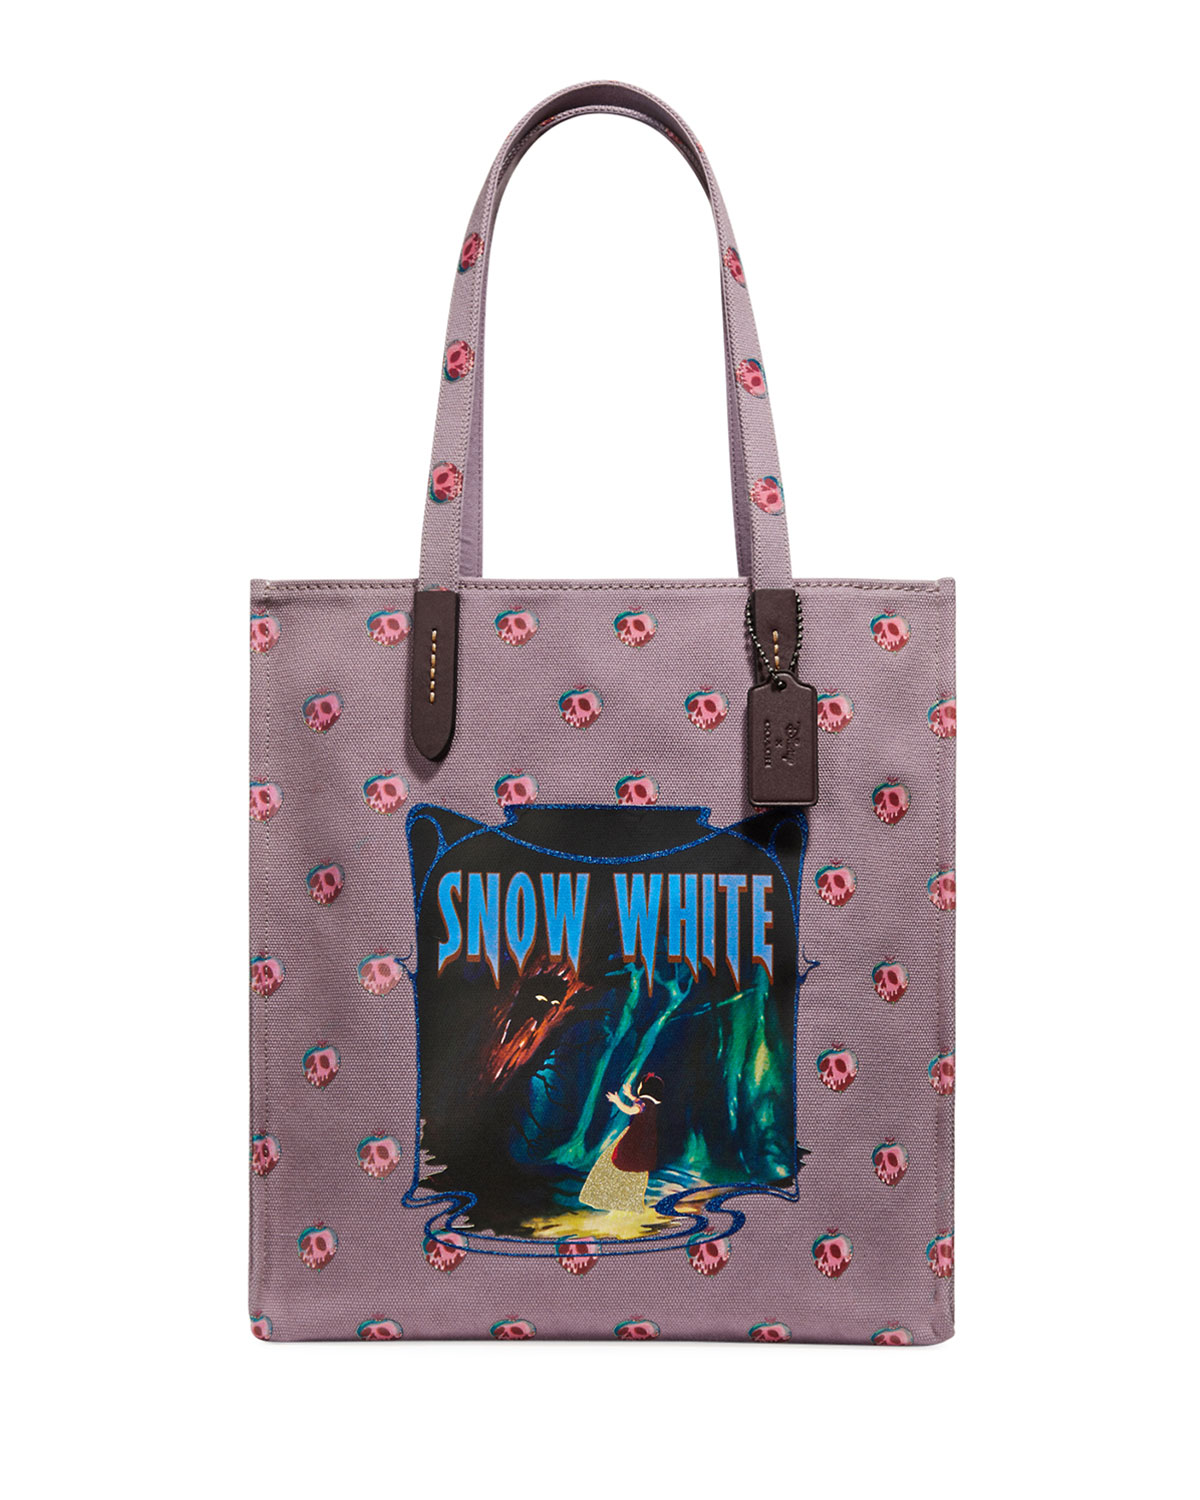 1cc68fcda3 Coach 1941 DISNEY X COACH Snow White Tote Bag